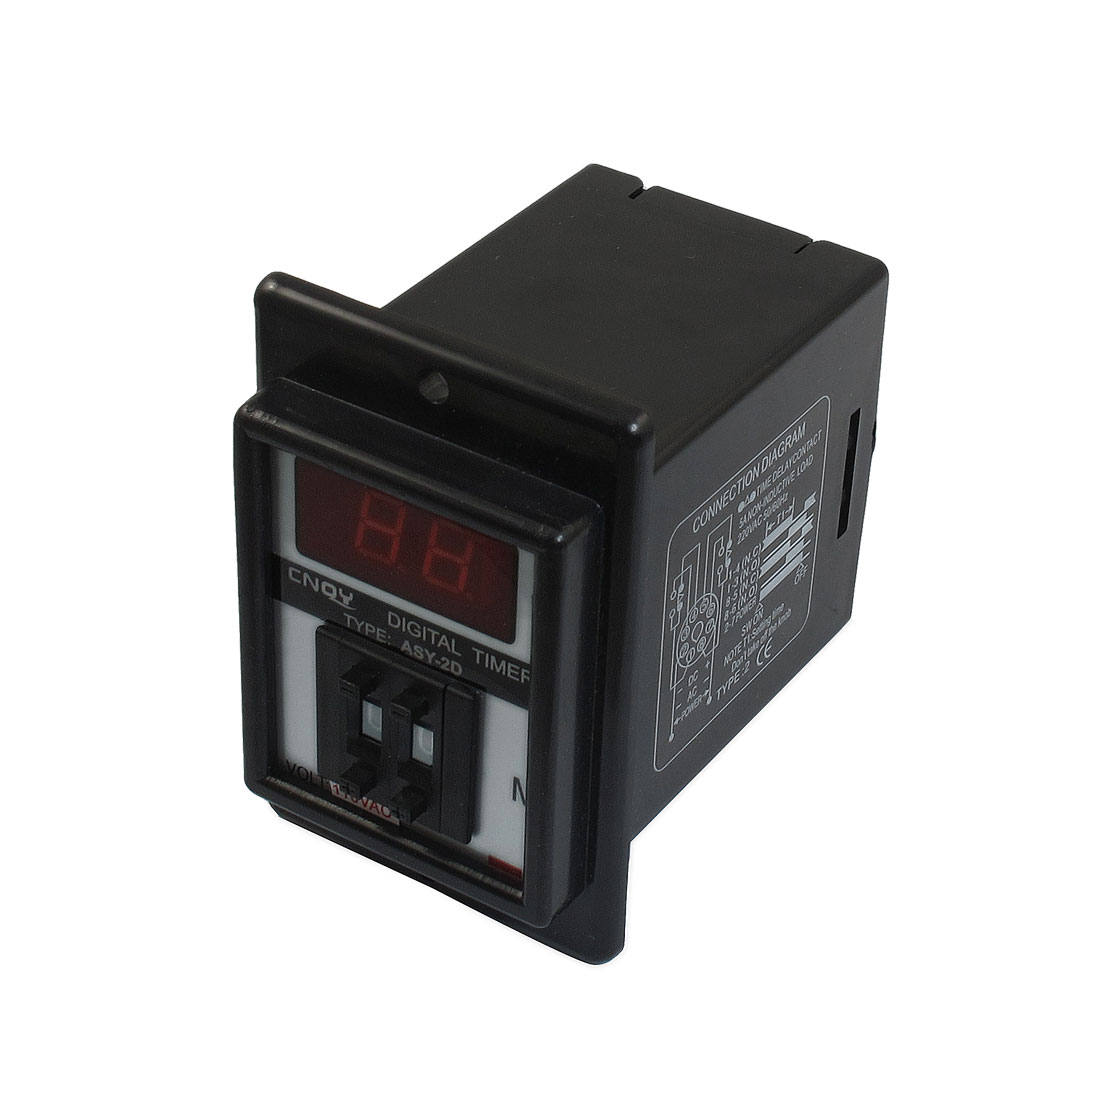 AC 110V 0.1-9.9 Minutes Digital Timer Time Delay Relay 8 Pin ASY-2D